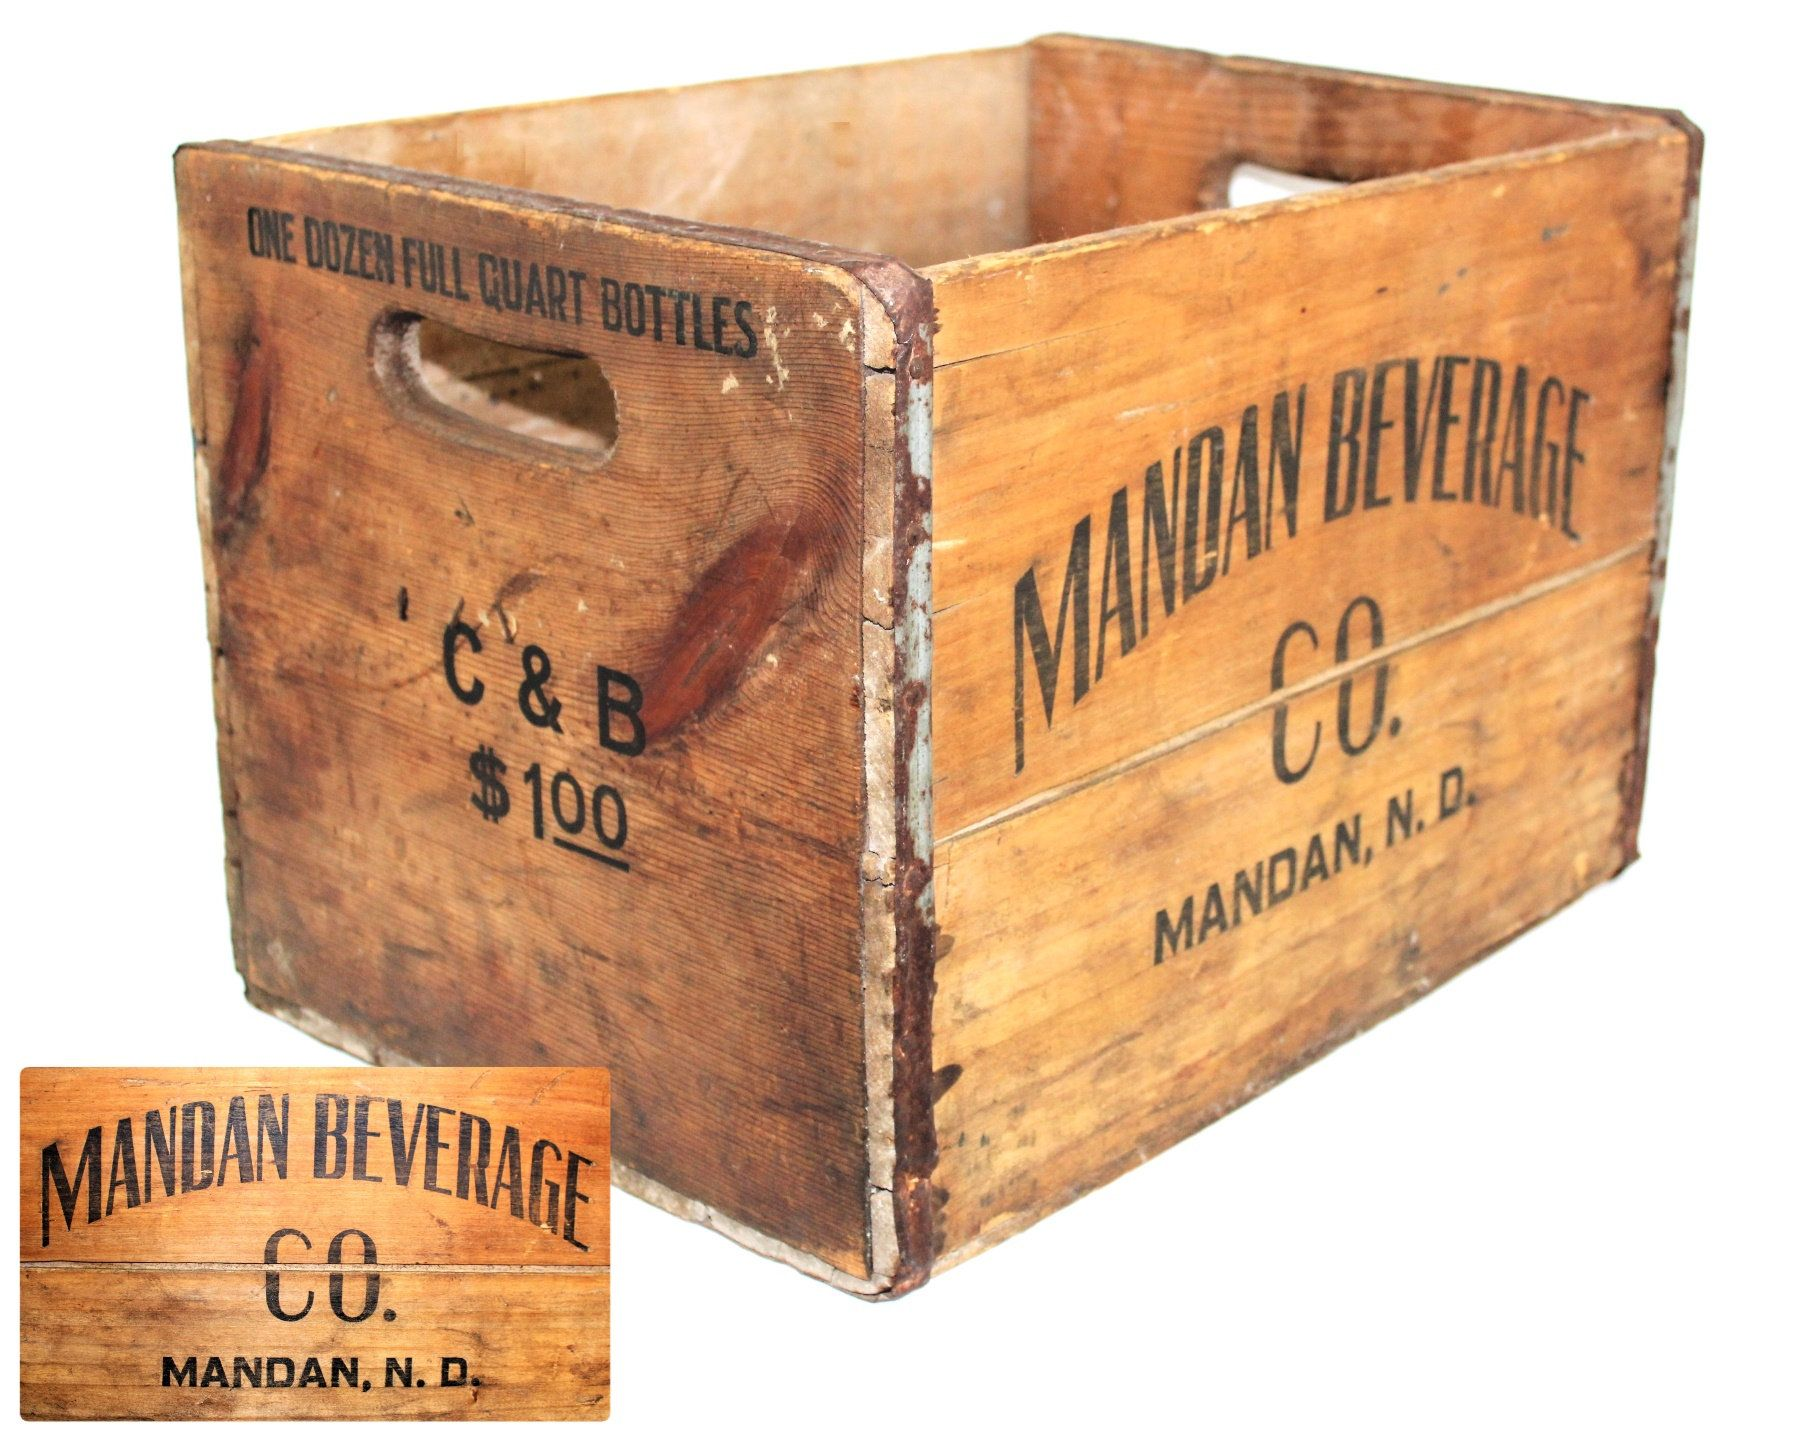 Amazing Wooden Vintage Crates On Amazon In 2020 Wooden Crates Vintage Crates Wood Storage